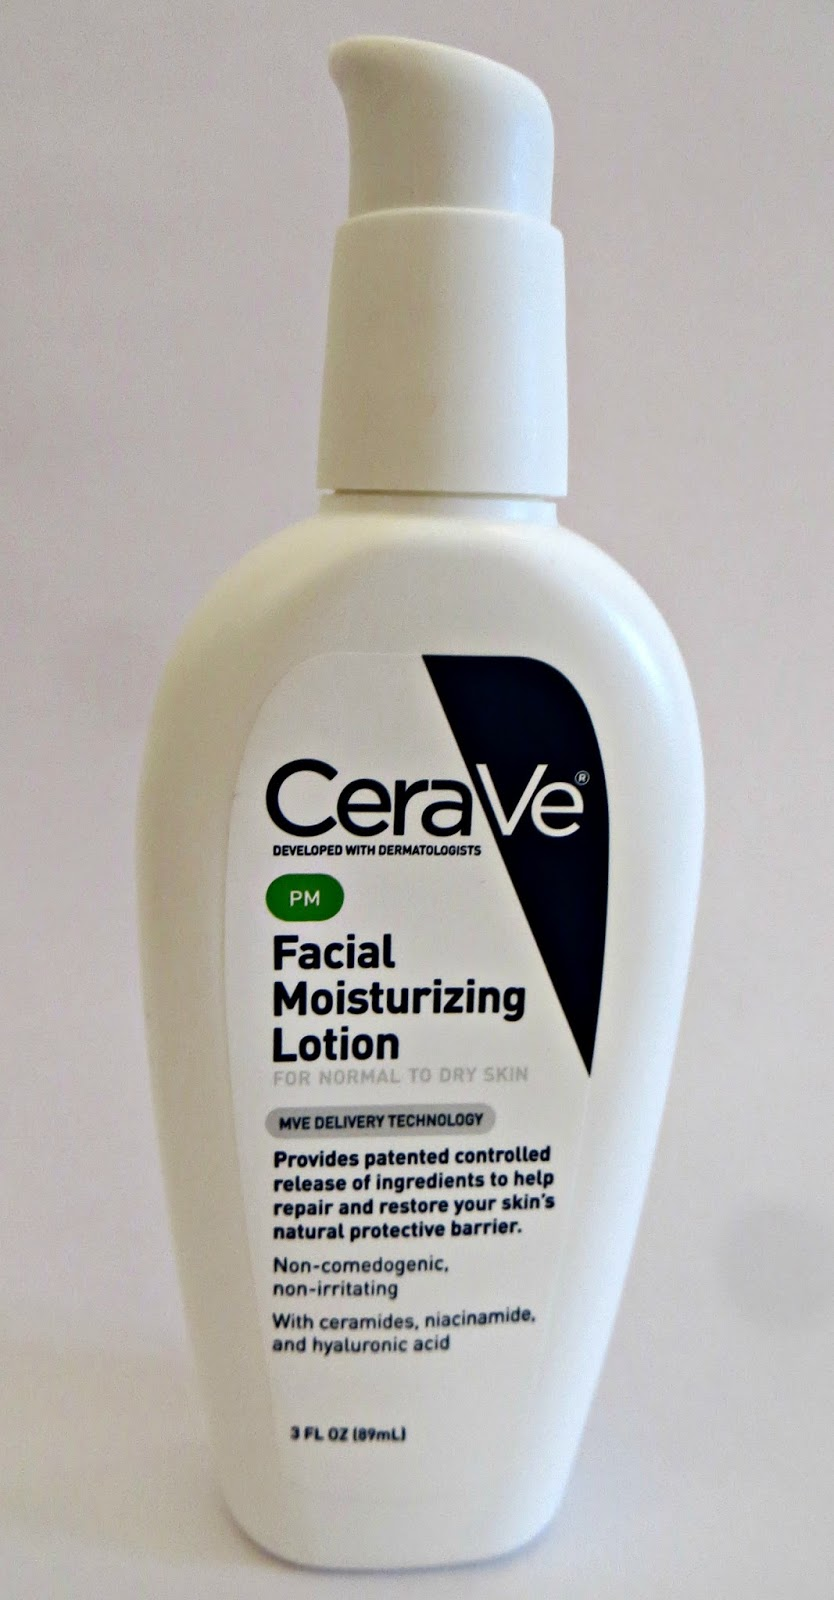 cerave facial moisturizing lotion pm great for wrinkles and age spots